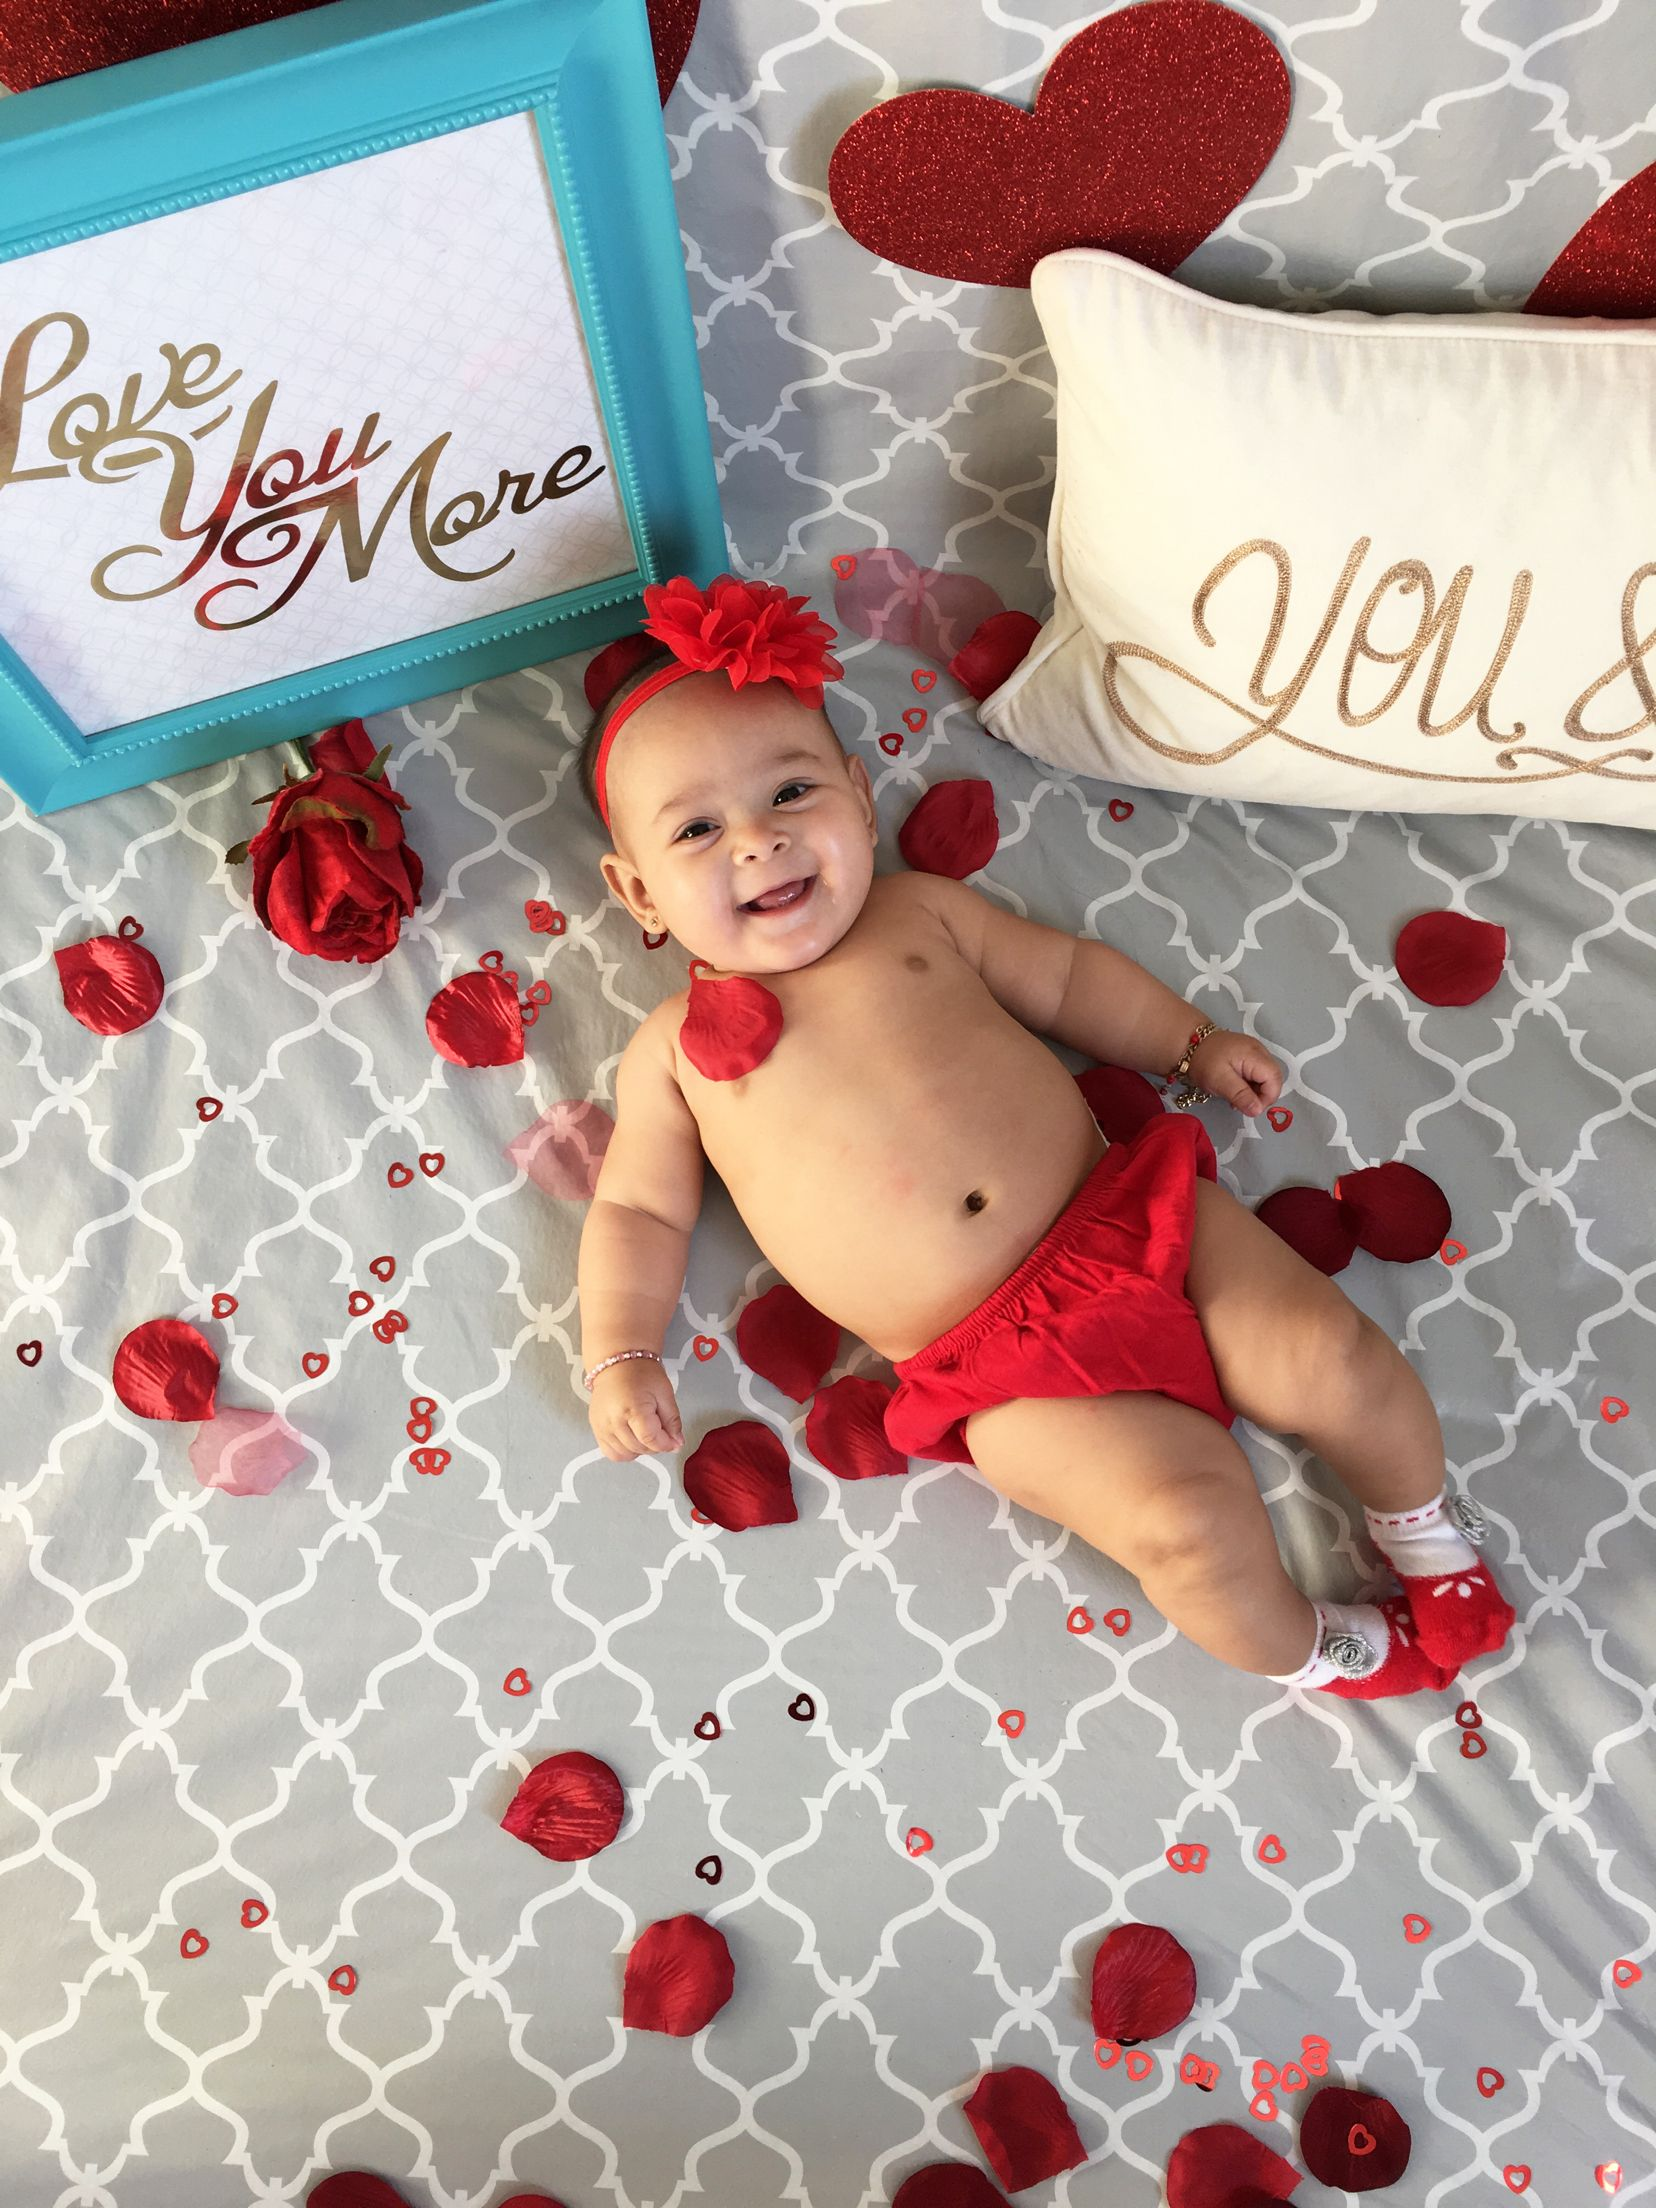 Decided to do a little valentines photoshoot with my little baby❤️ #DIY #photoshoot #loveisintheair